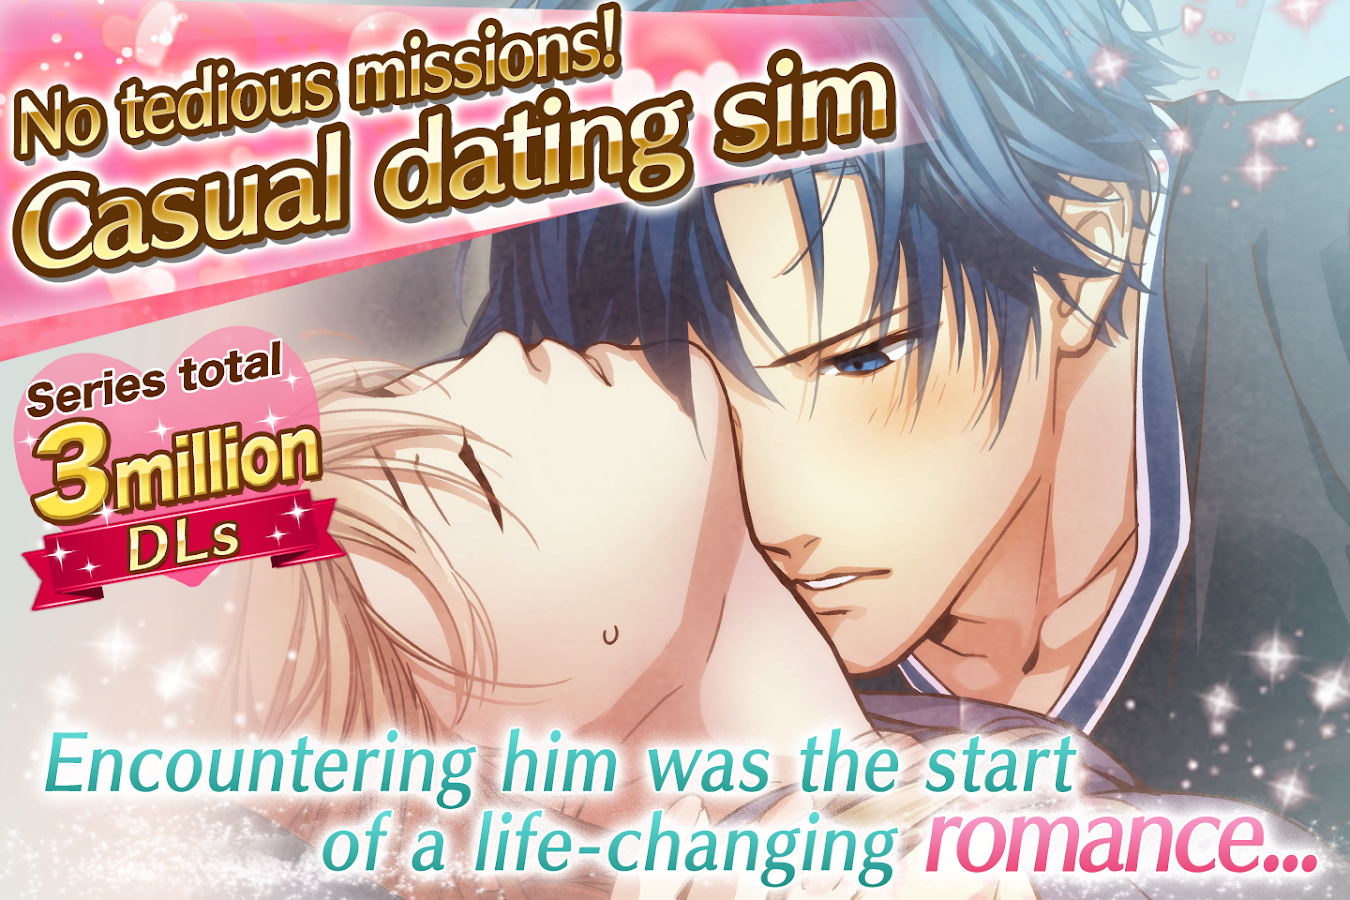 anime dating games for girls free: